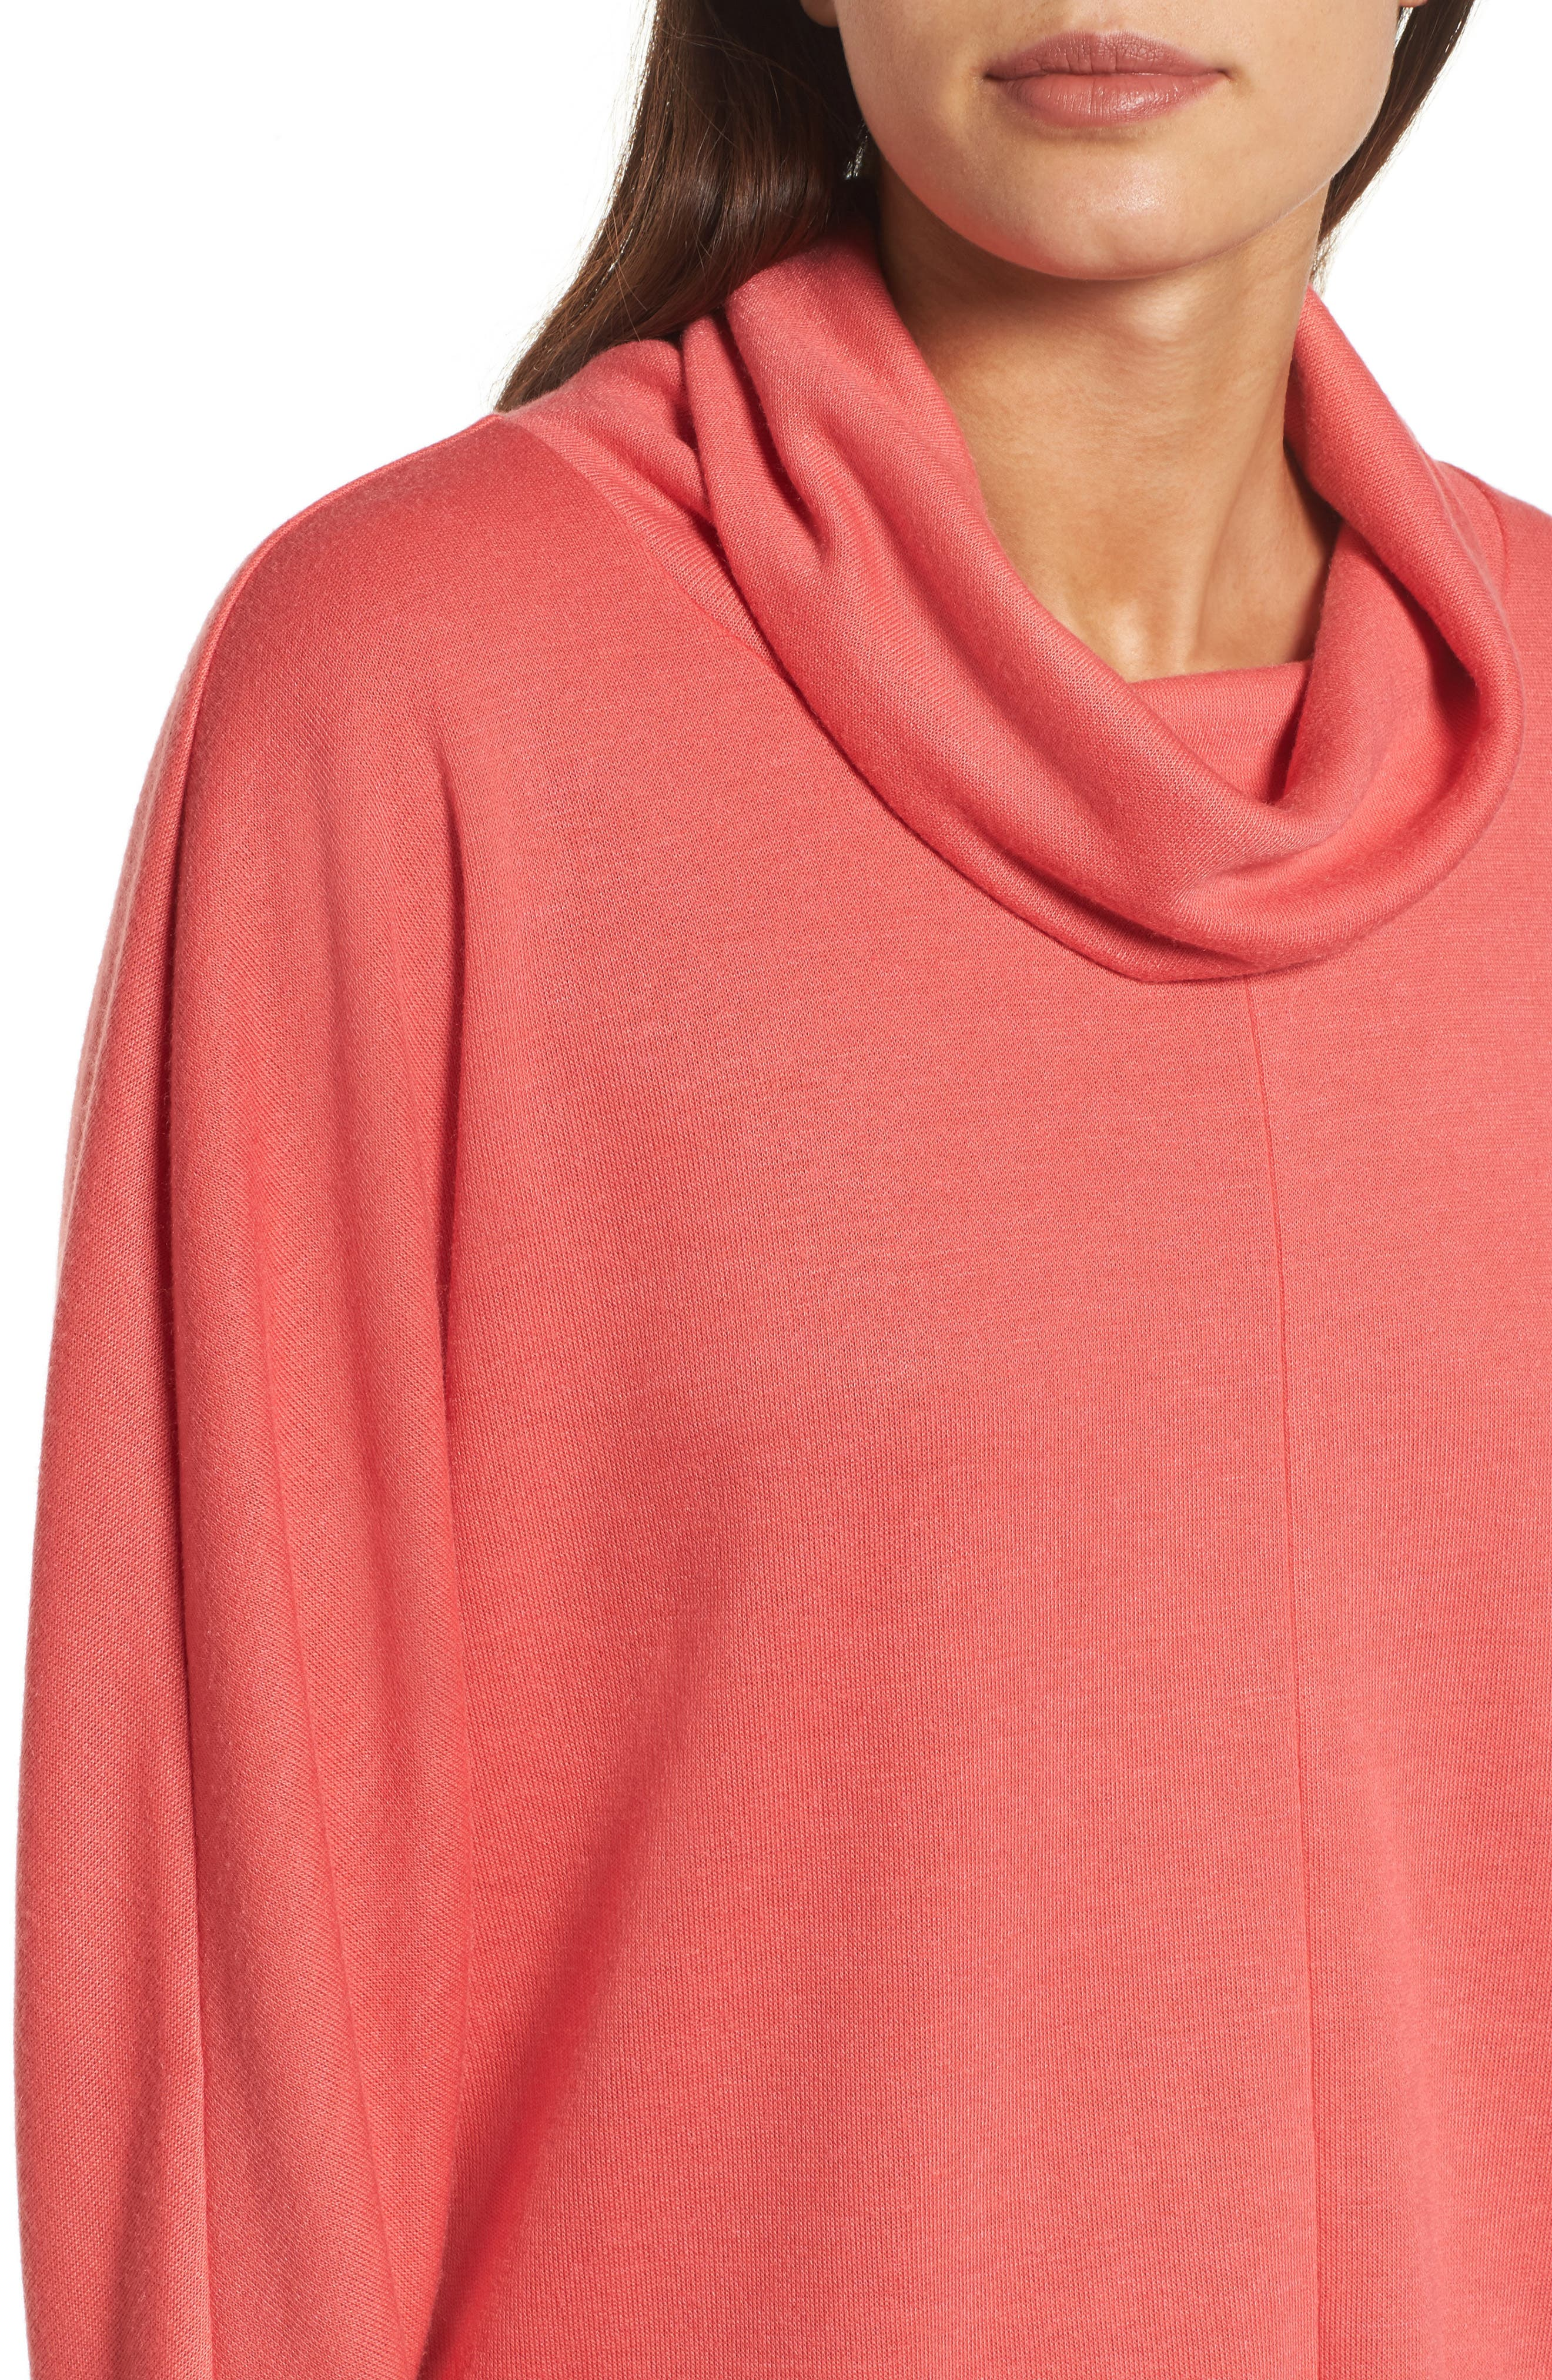 Cowl Neck Pullover,                             Alternate thumbnail 4, color,                             Coral Sea